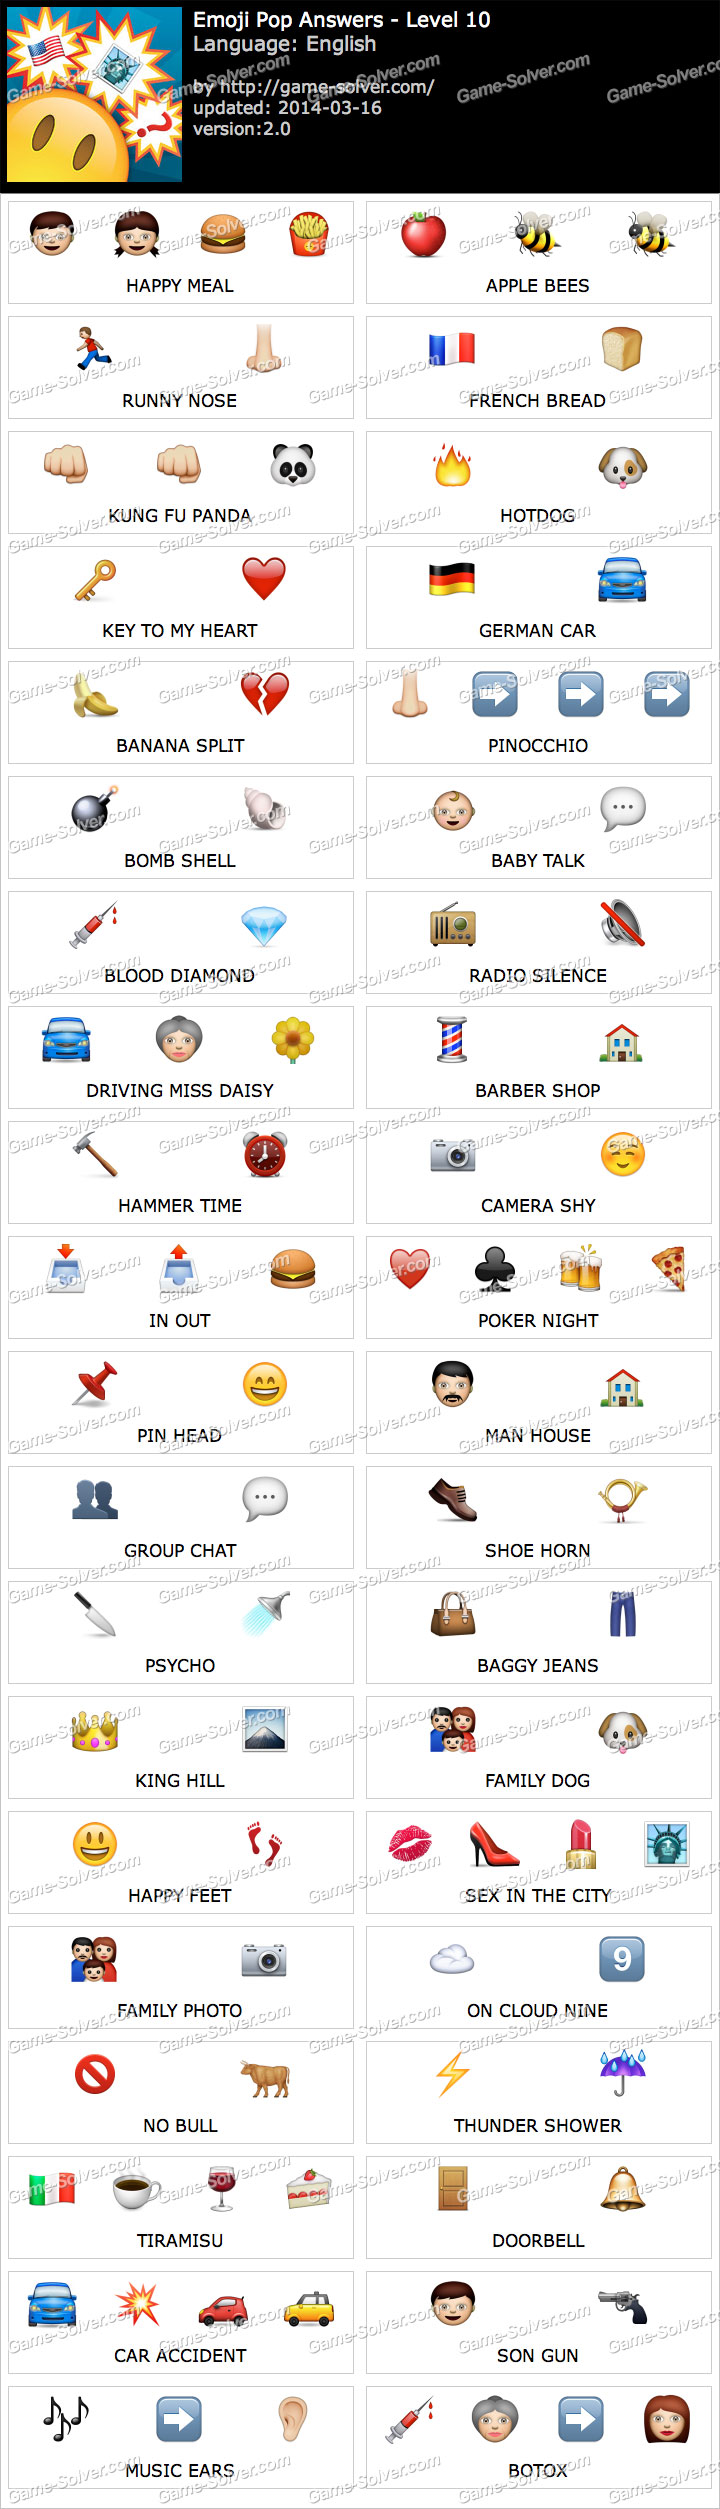 guess the emoji answers level 10 bike and arm bicycling